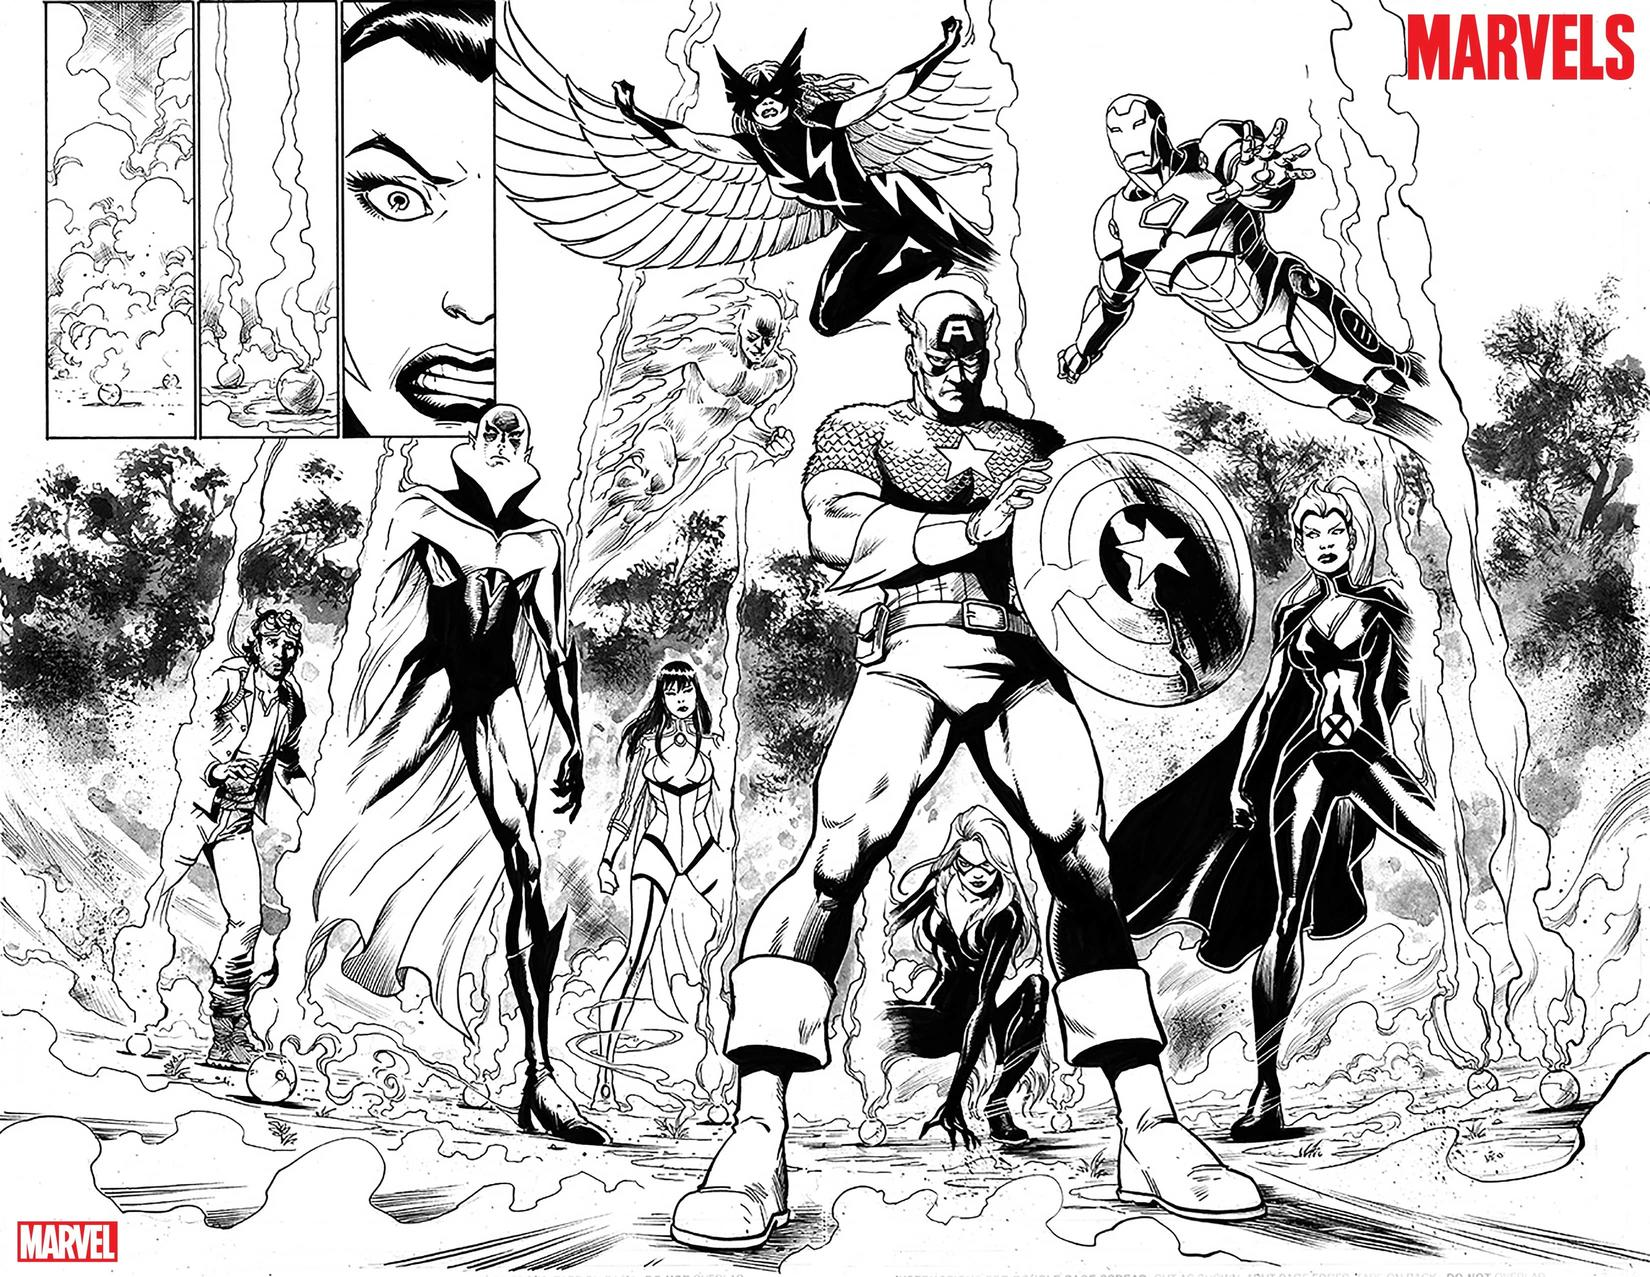 THE MARVELS #1 preview inks by Yildiray Cinar